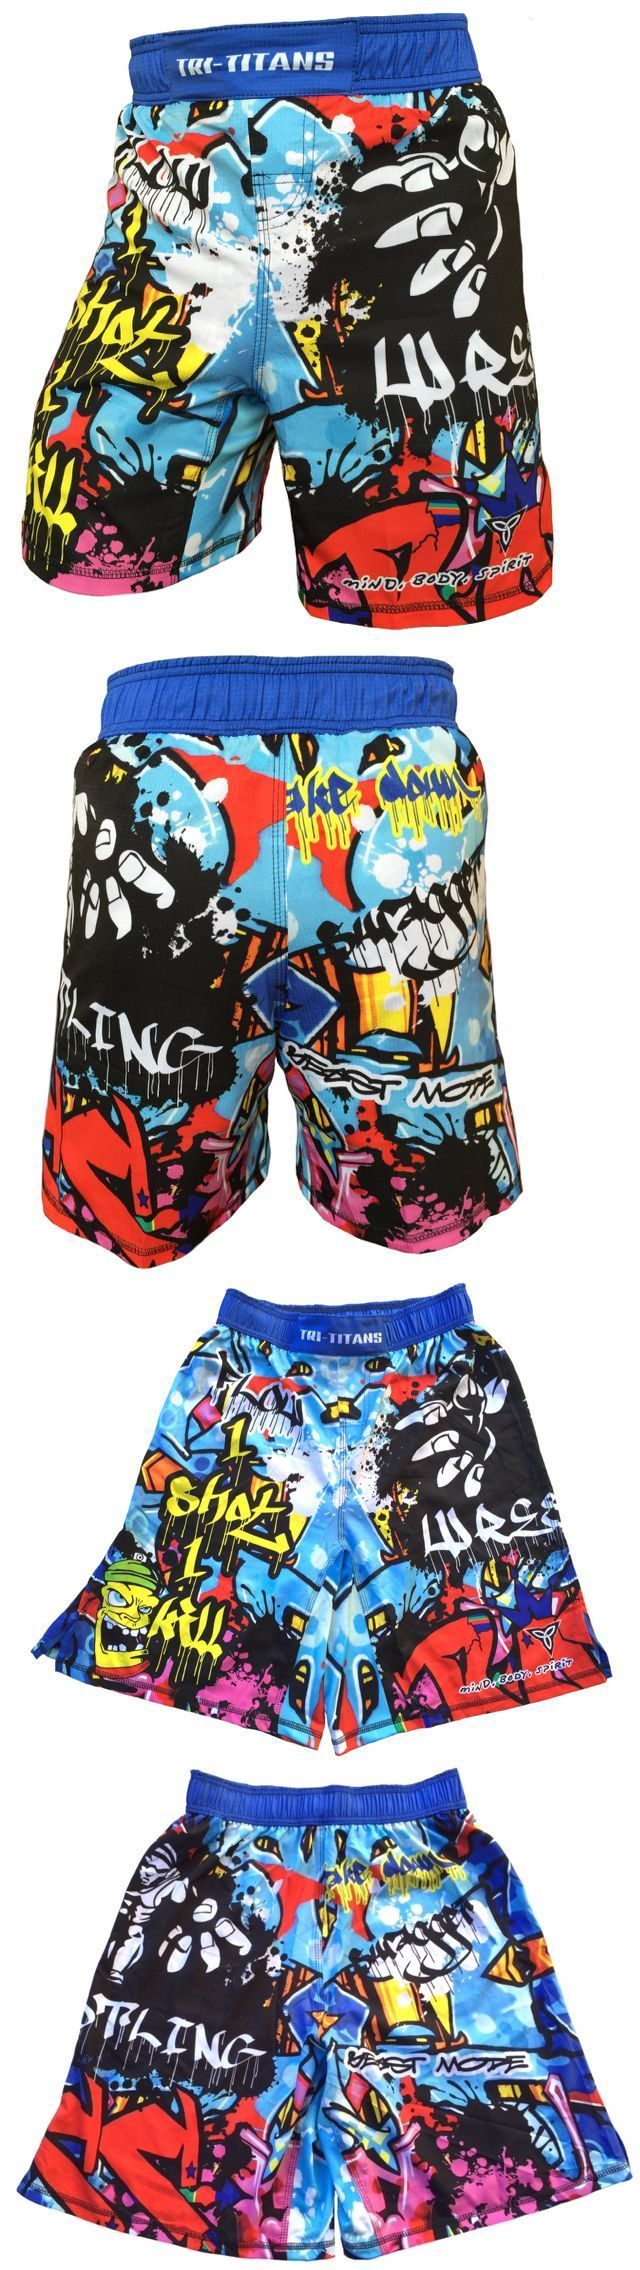 Clothing 79796: Graffiti Fight Shorts Wrestling Workout Training Athletics - Youth And Men Sizes BUY IT NOW ONLY: $34.99